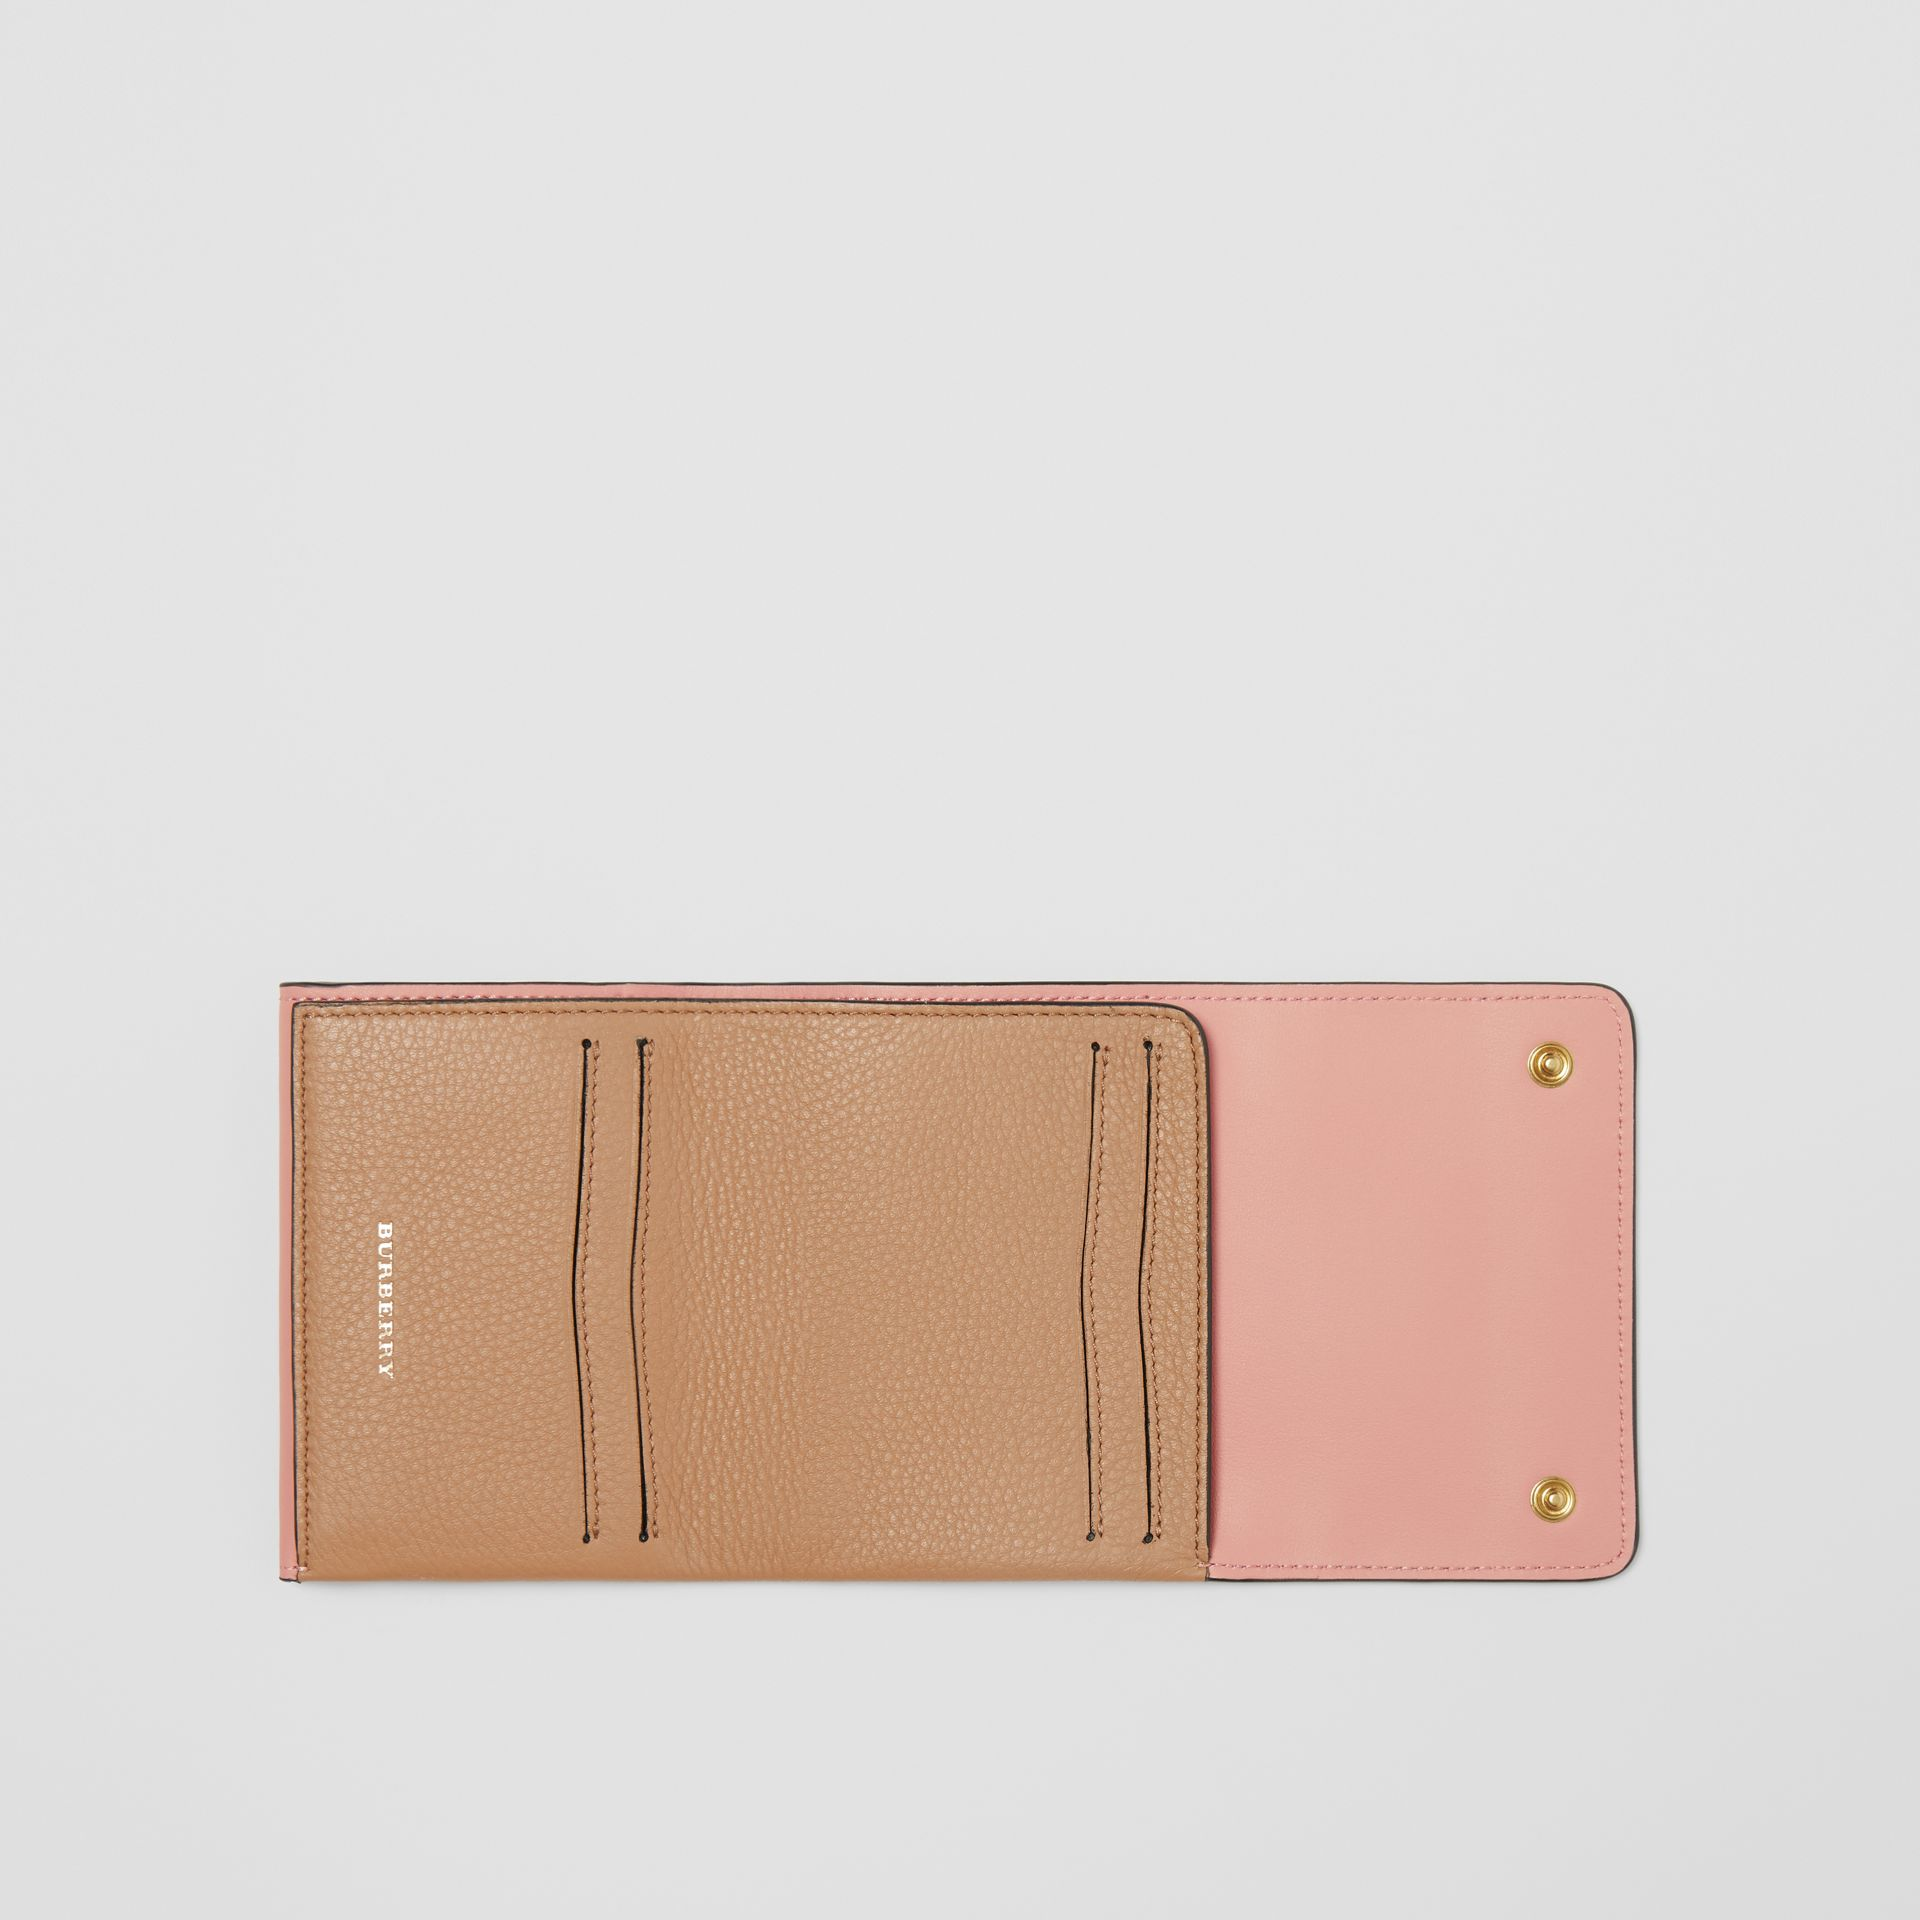 Small Leather Folding Wallet in Light Camel - Women | Burberry - gallery image 3